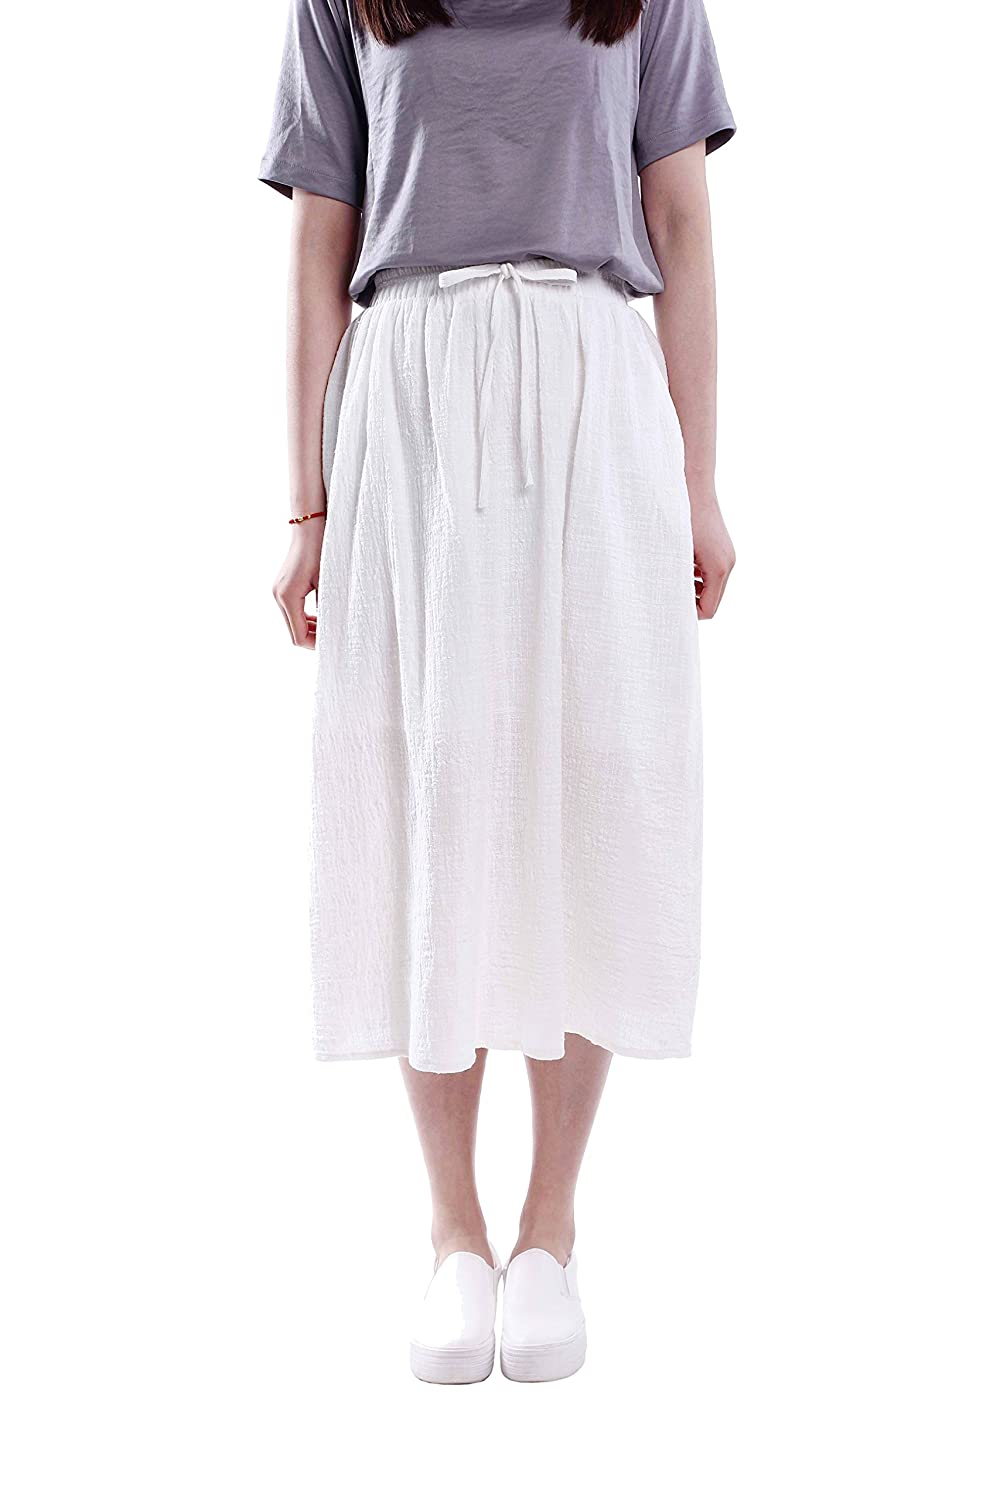 Purpura Erizo Womens Light Drawstring Slub Linen Pintuck Mid Skirt